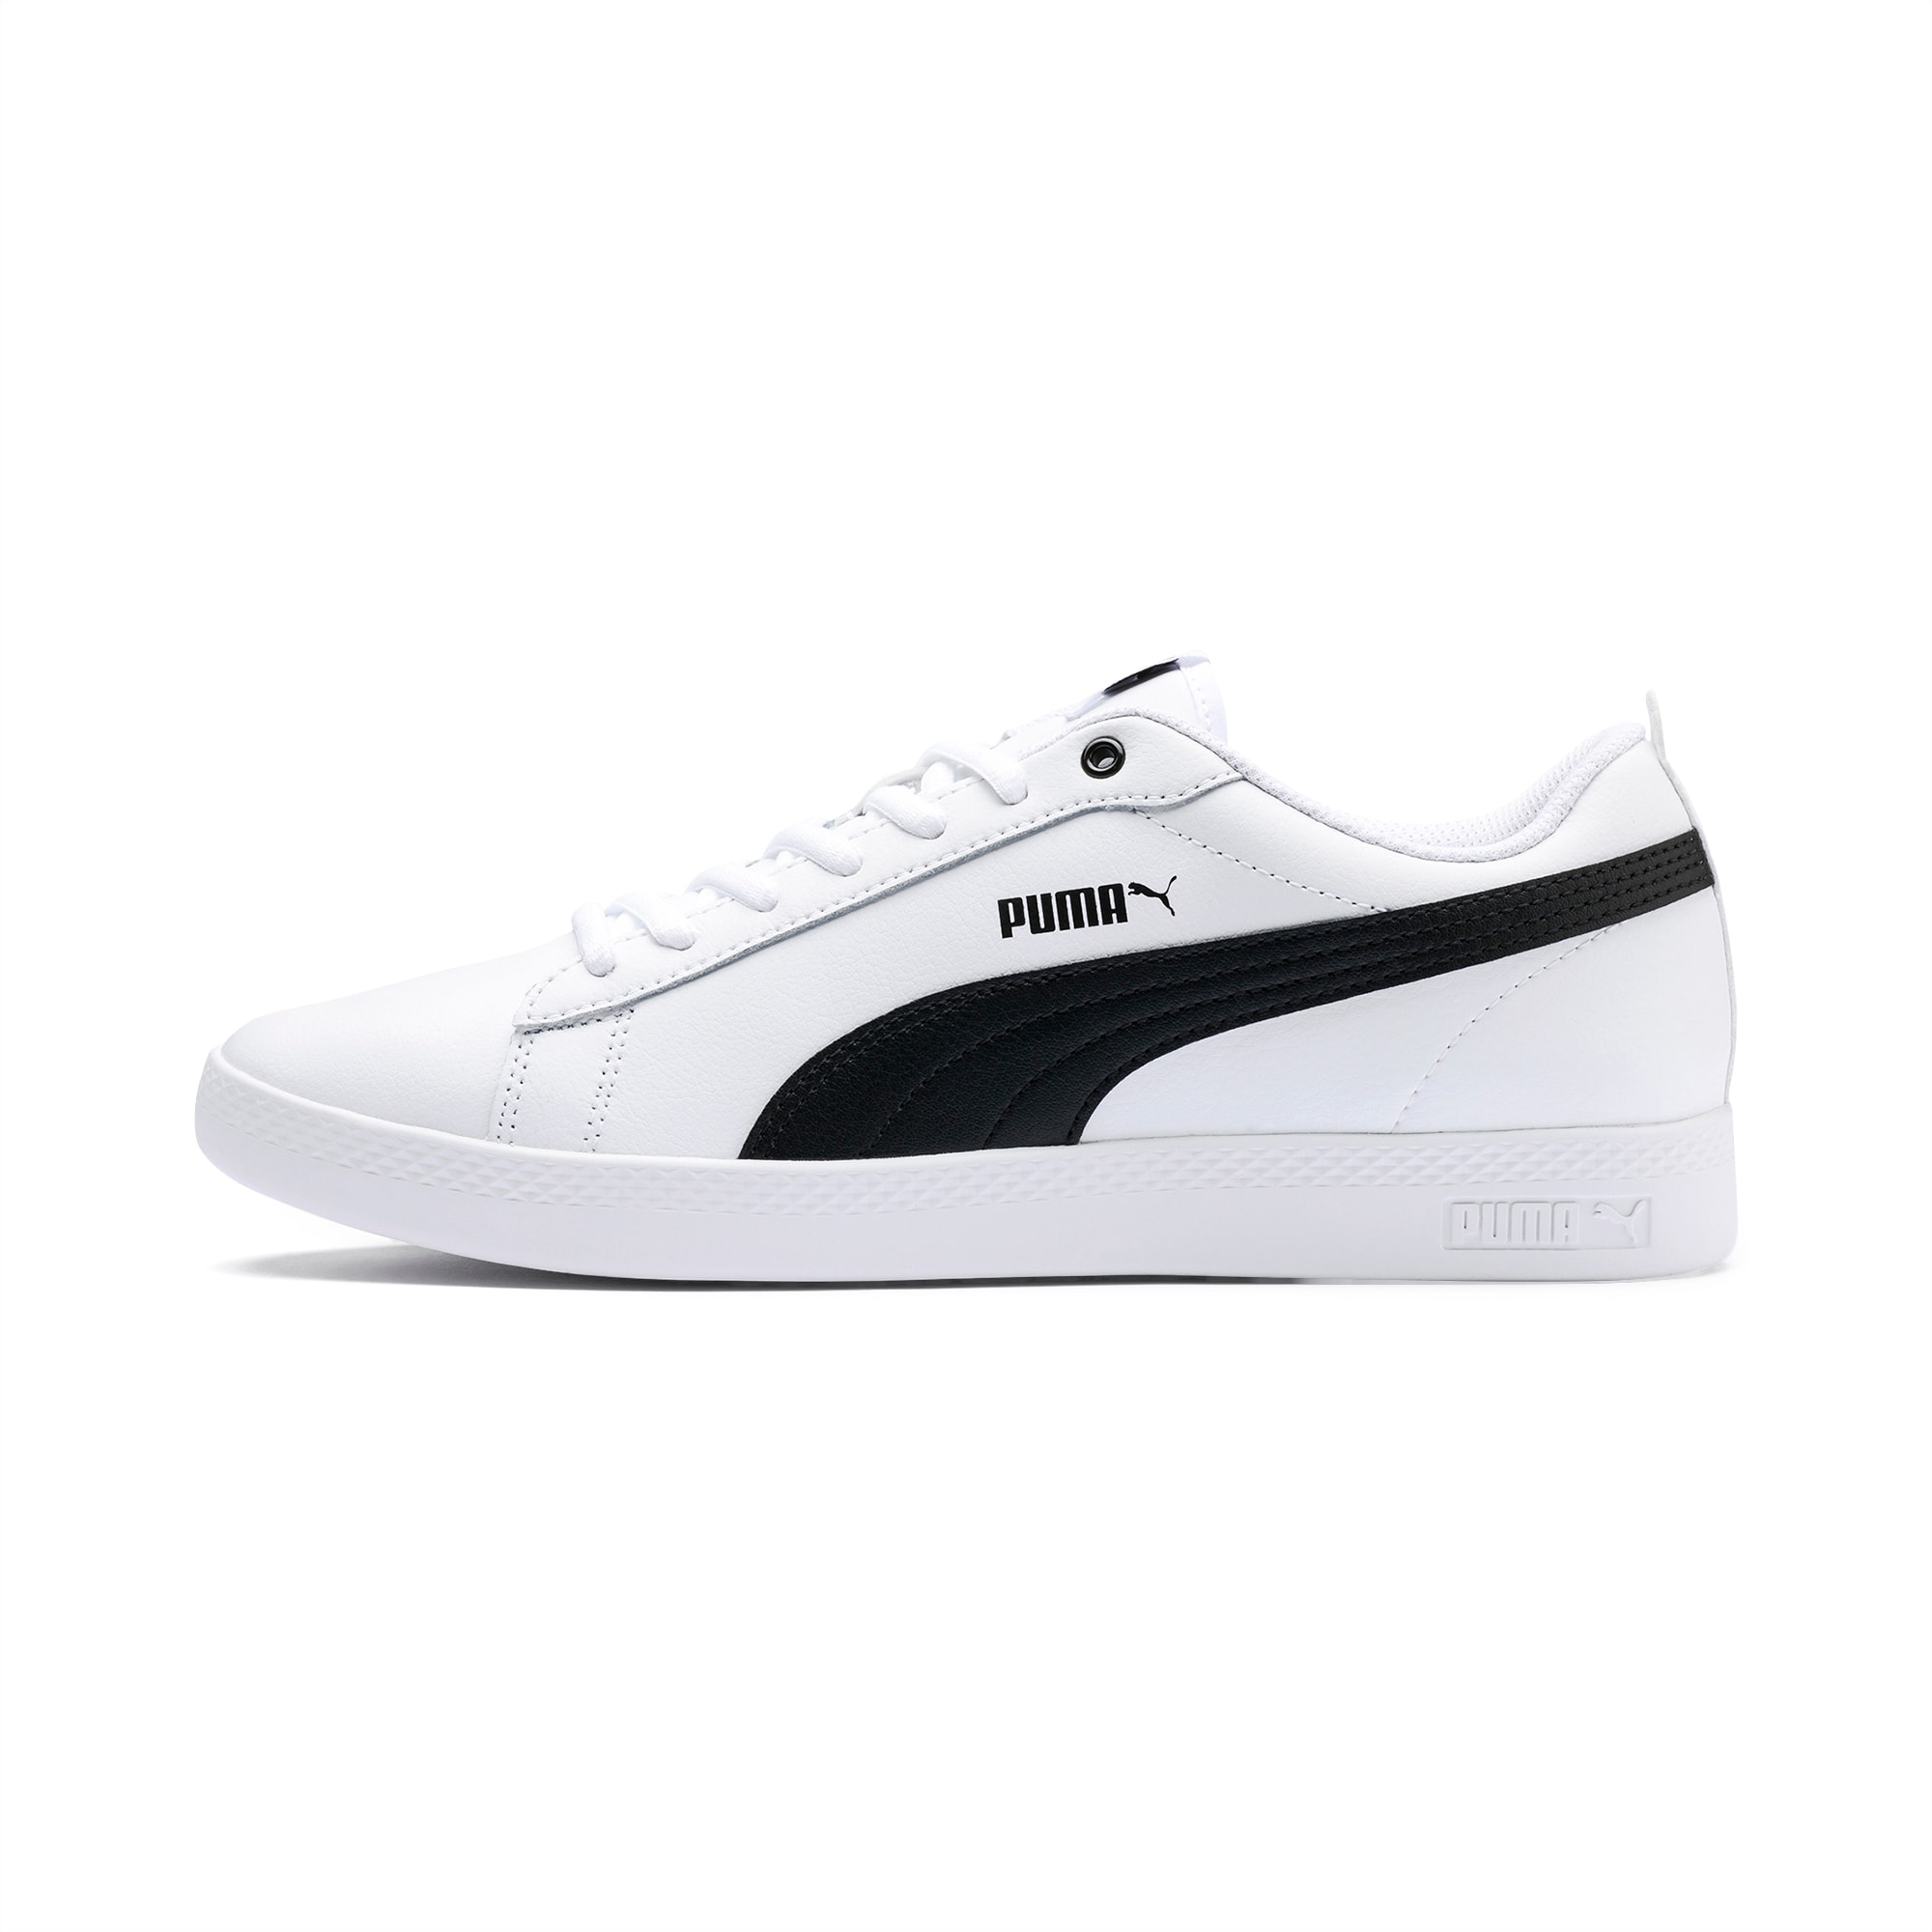 Smash v2 Leather Women's Sneakers   White puma sneakers